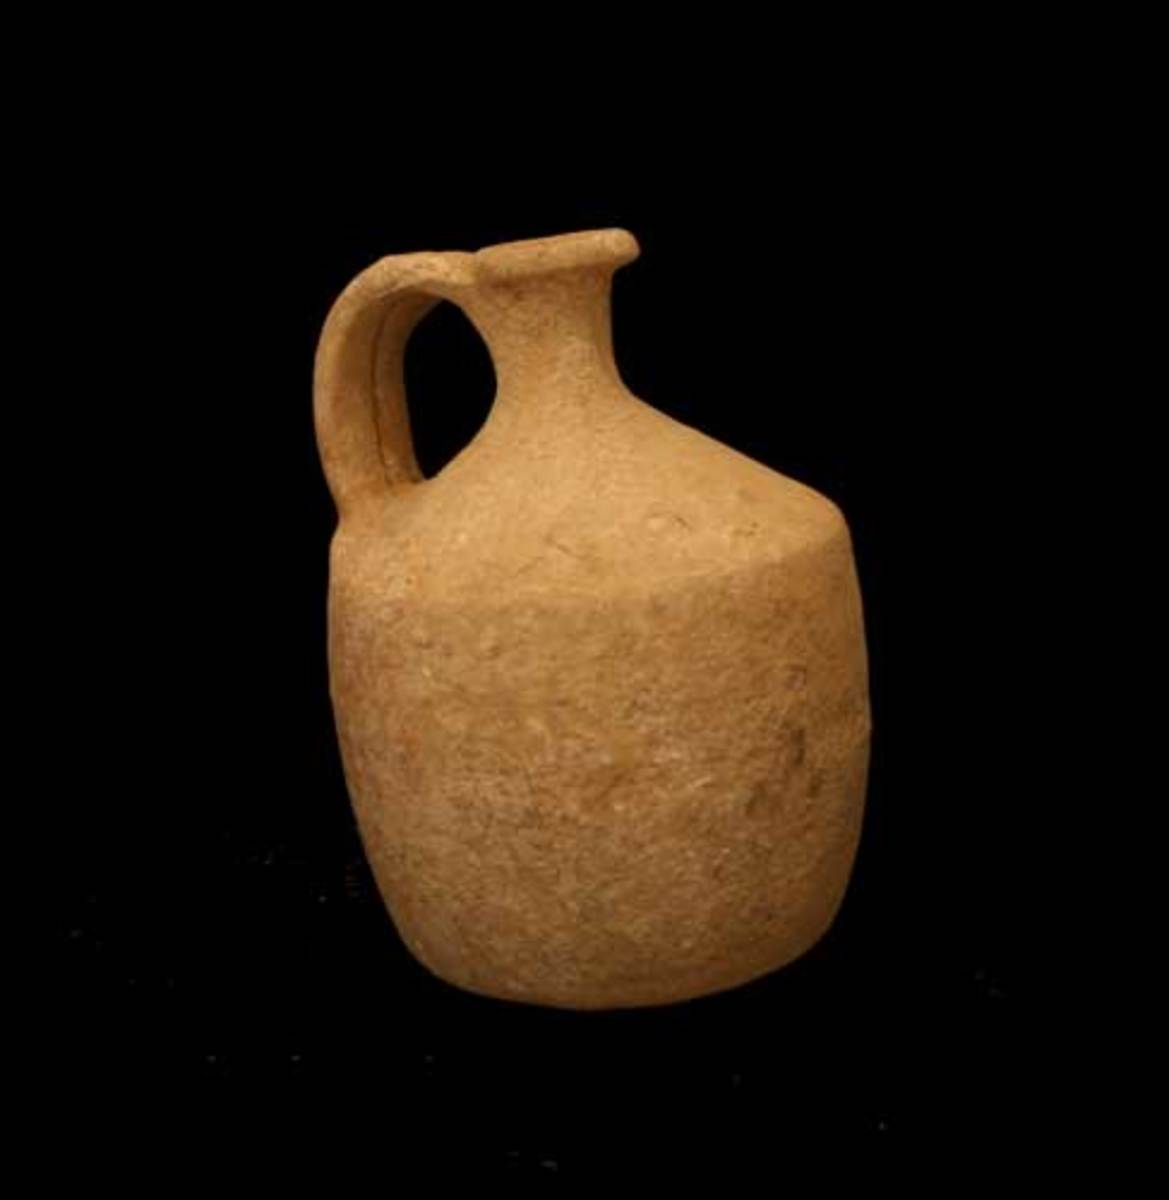 Terracotta Jug from Hebron, Israel, ca. 1900 - 1600 BCE